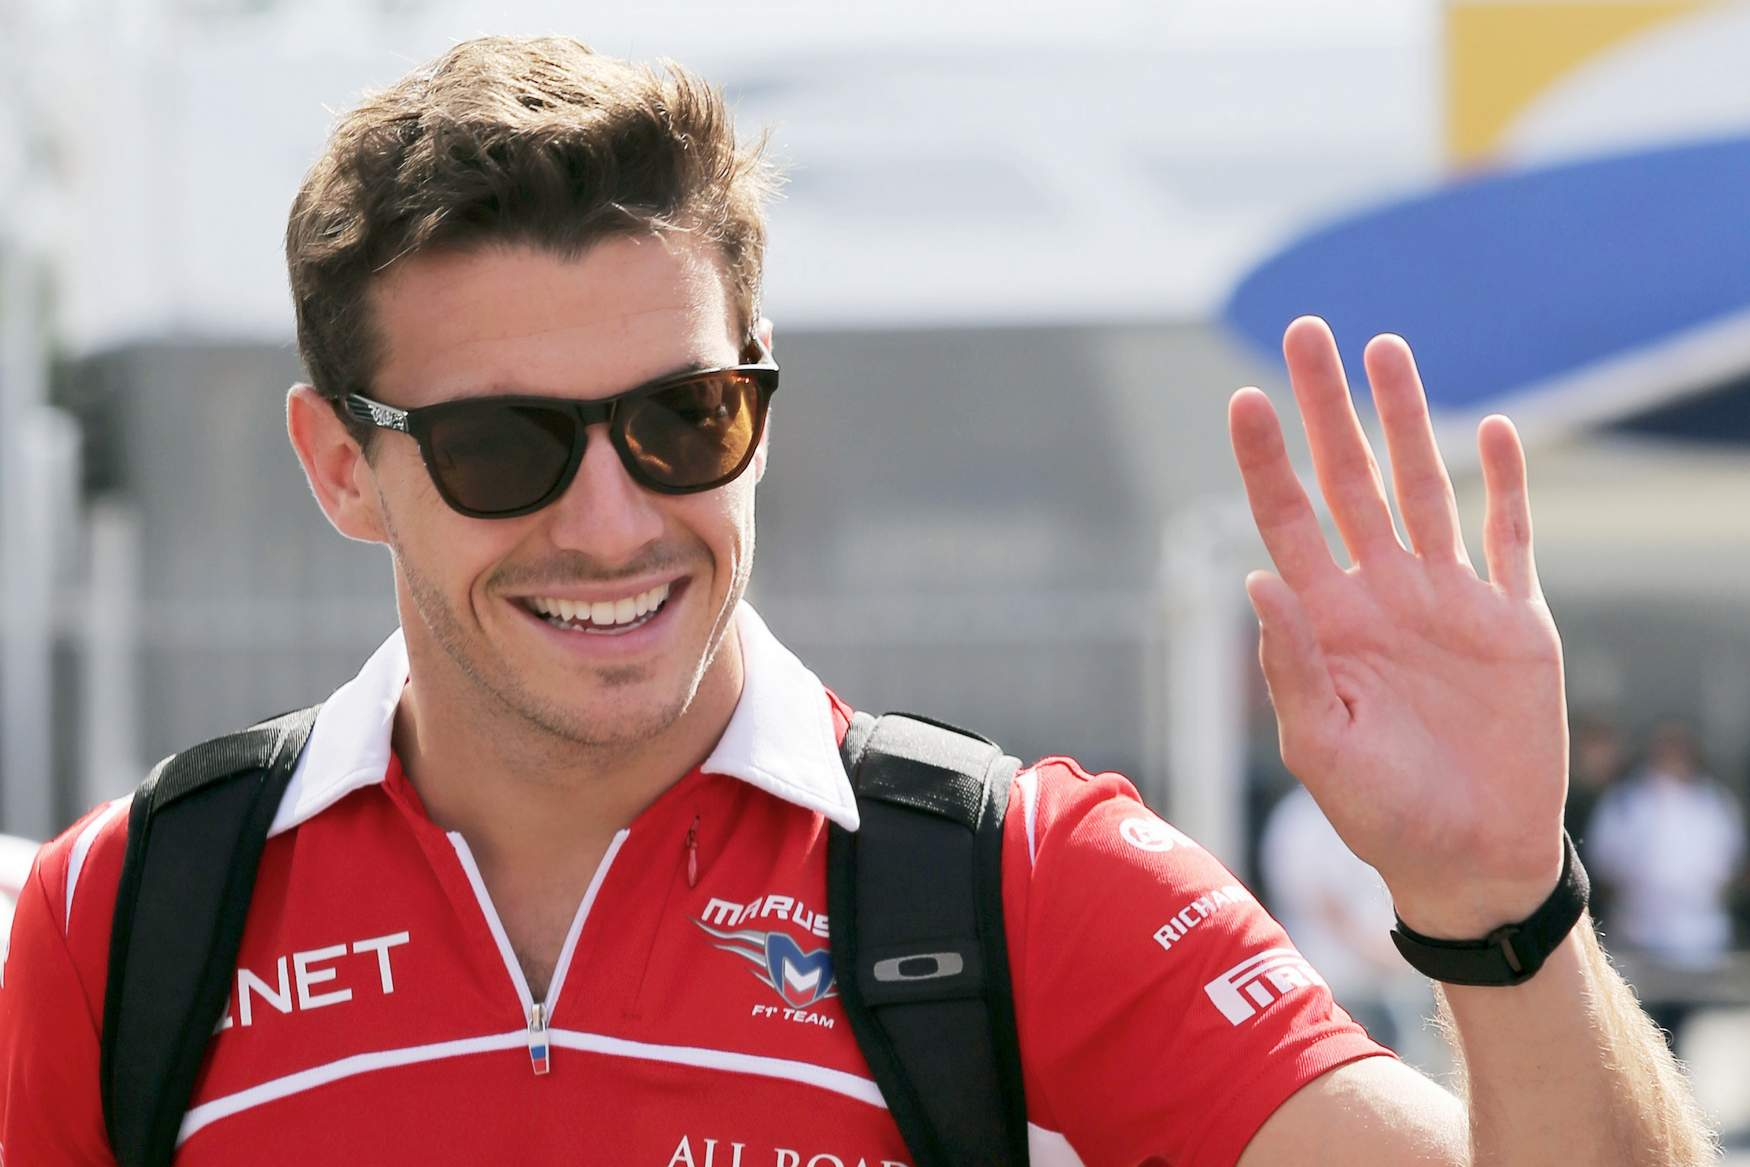 Jules Bianchi (FRA) Marussia F1 Team. 04.09.2014. Formula 1 World Championship, Rd 13, Italian Grand Prix, Monza, Italy, Preparation Day.